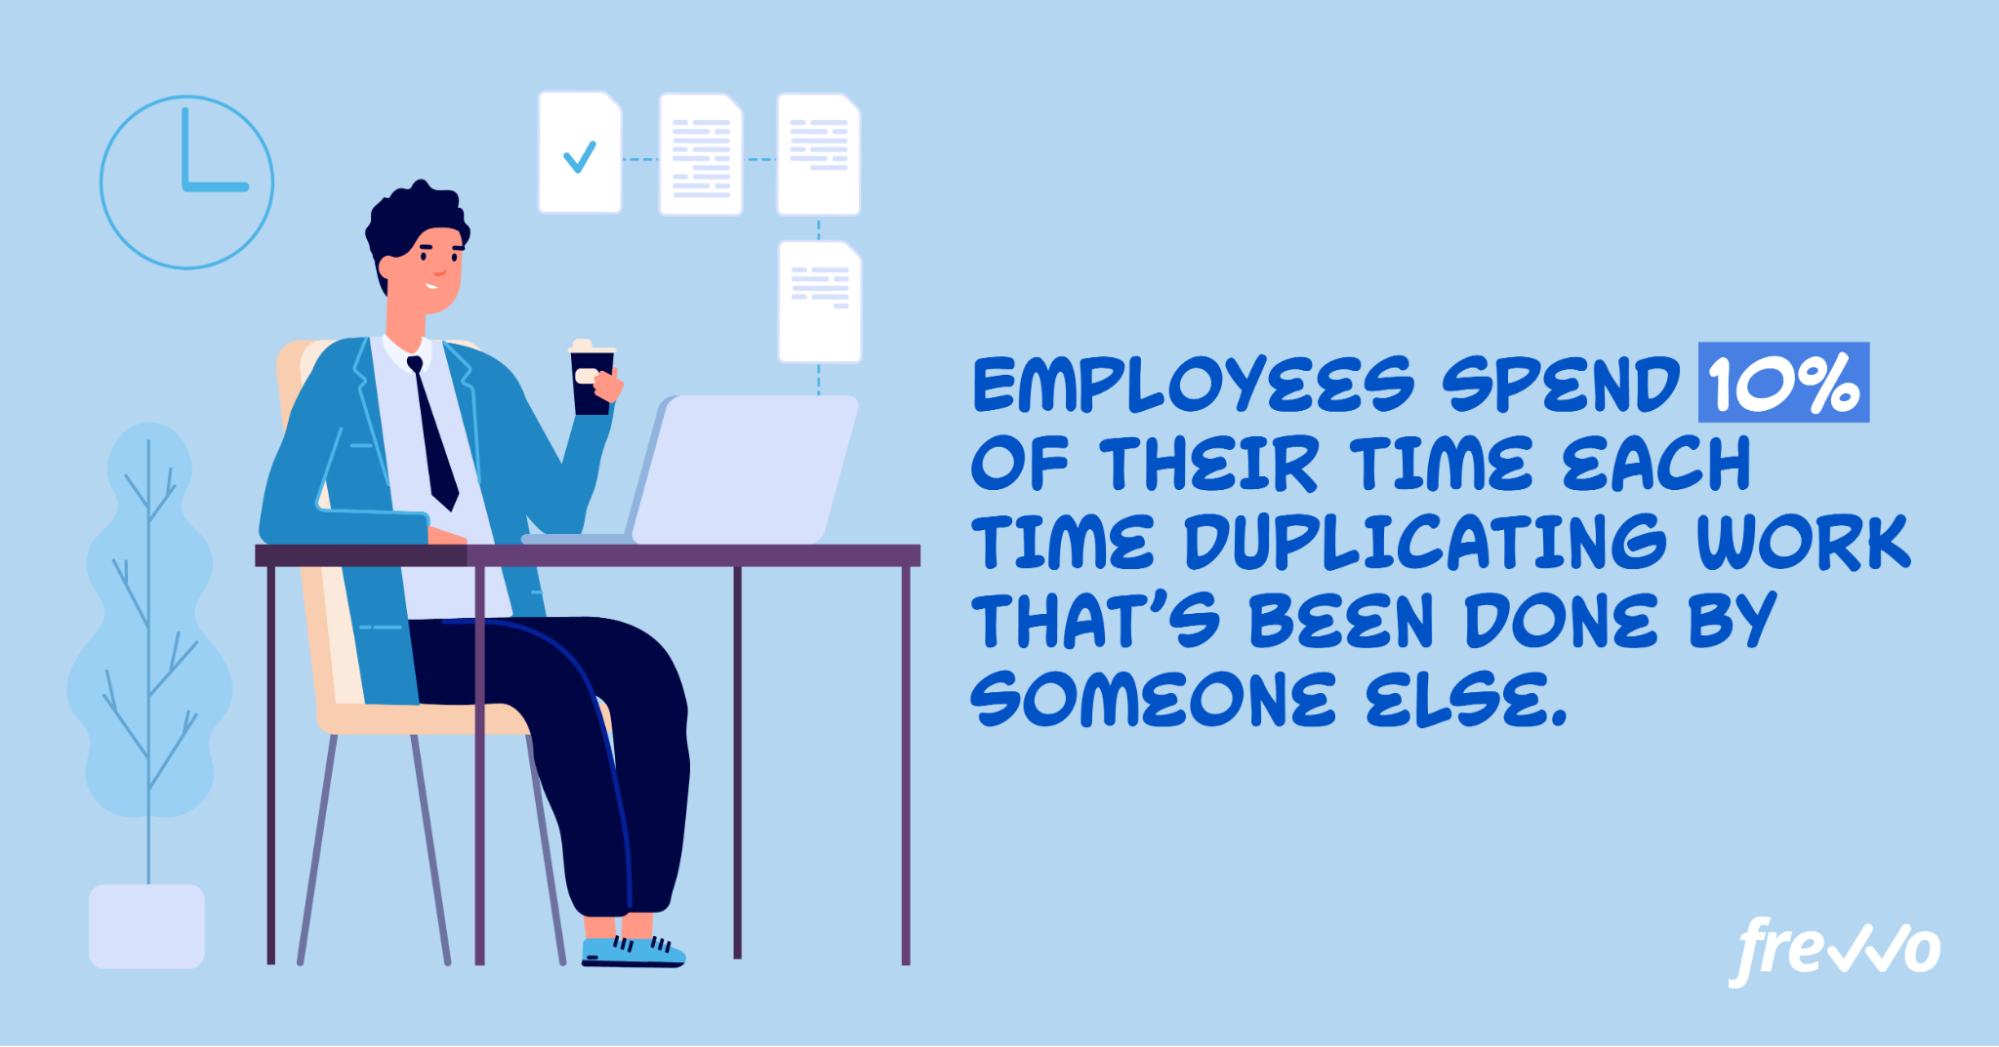 Time that employees spend on duplicating work